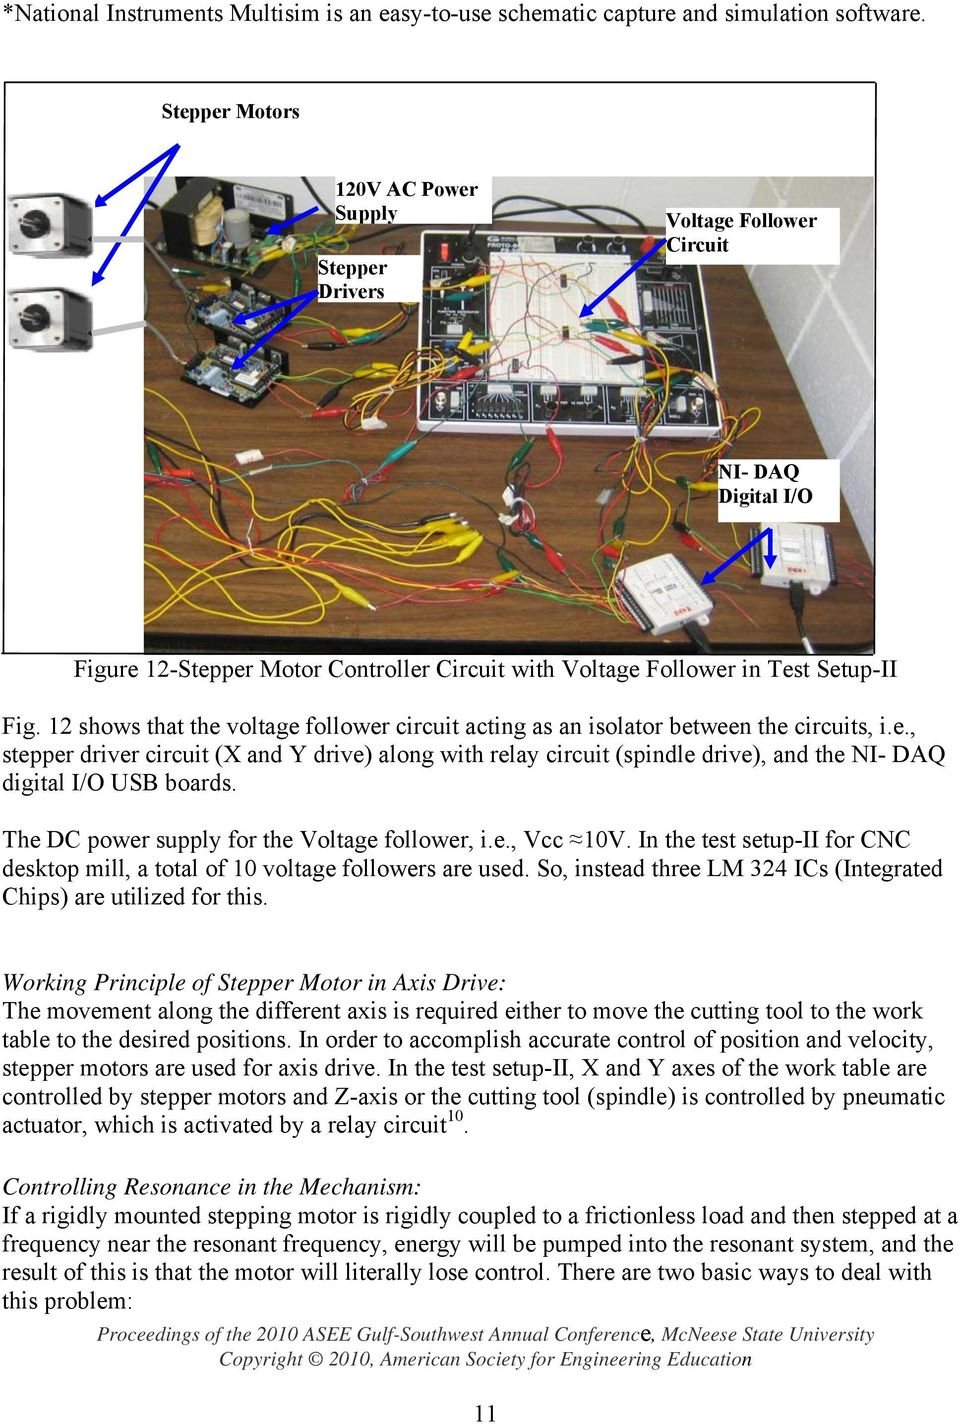 Stepper Motor Control Using Labview Tm In A Computer Numerically Usb Controller Schematic 12 Shows That The Voltage Follower Circuit Acting As An Isolator Between Circuits Ie